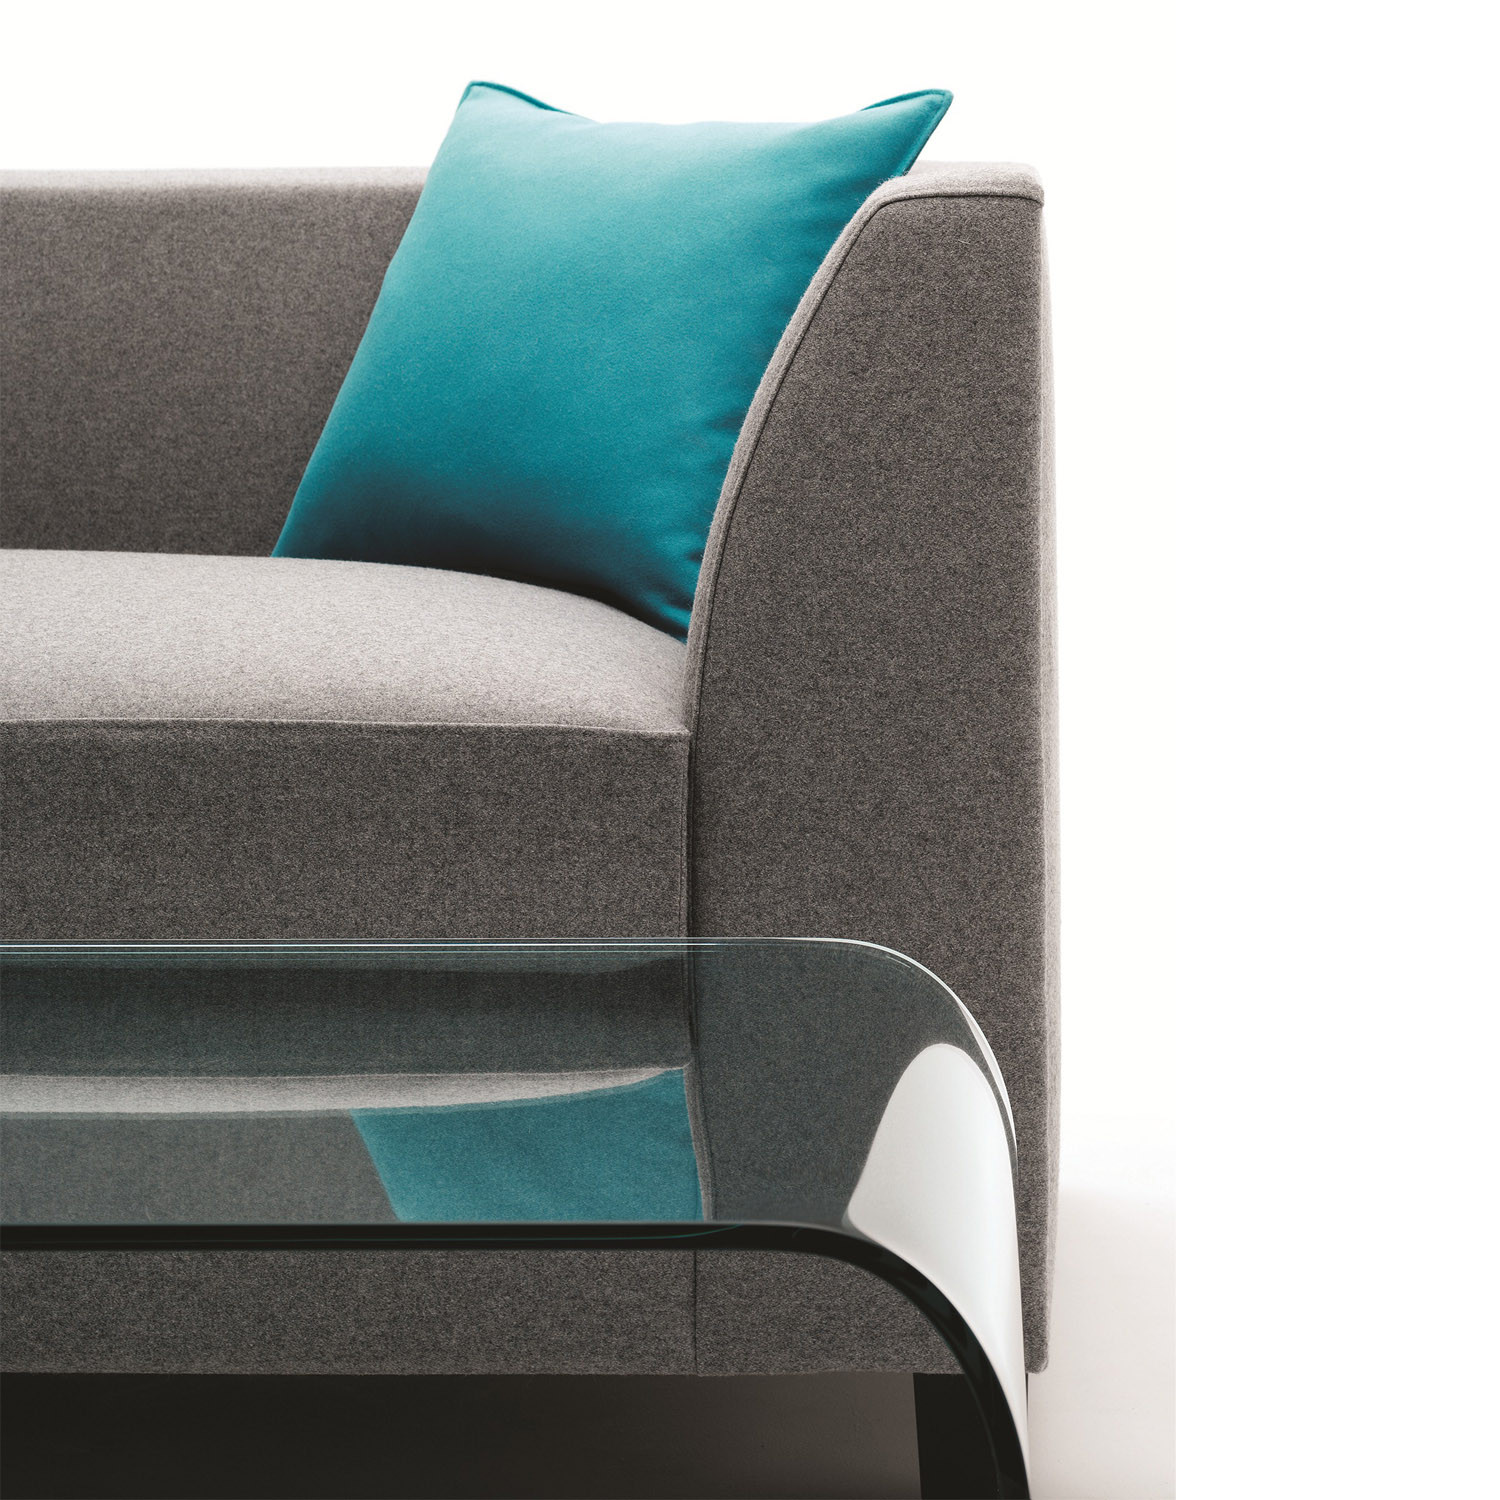 Imogen Sofa from Lyndon Design